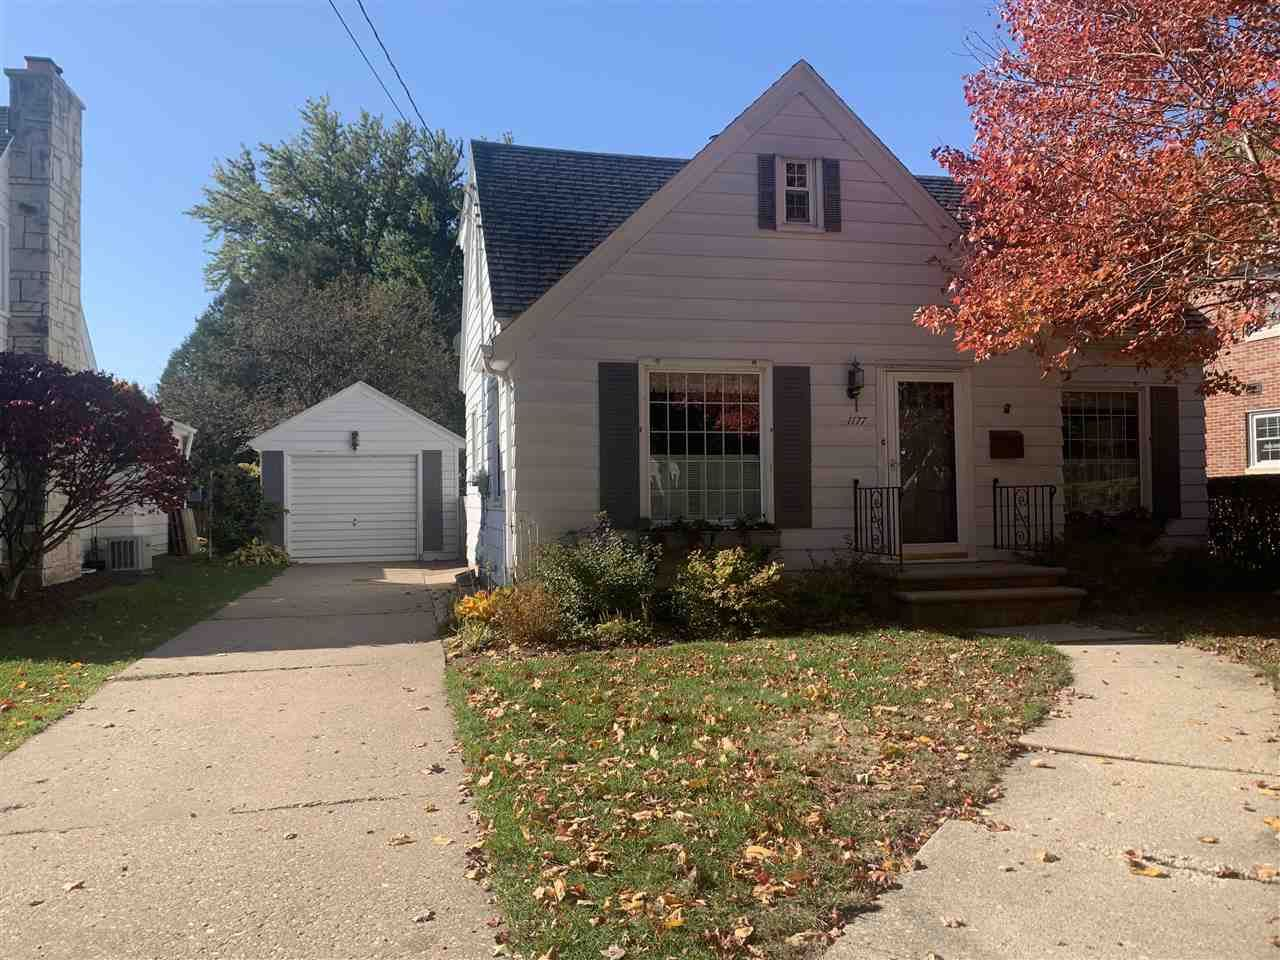 1177 DIVISION Street, Green Bay, WI 54303 - MLS#: 50231170